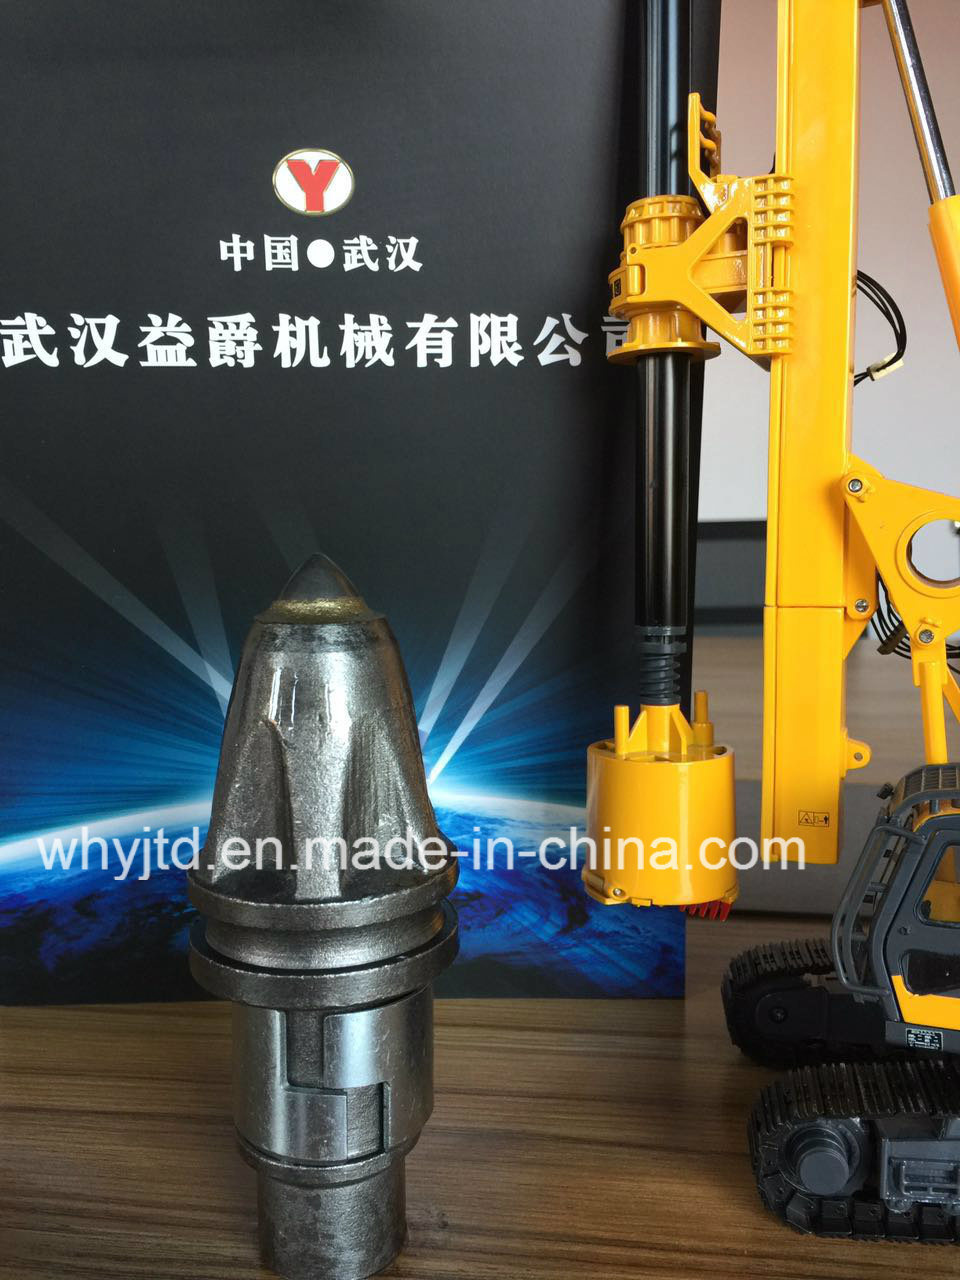 3k High Quality Excavator Spare Parts for Drill Bits